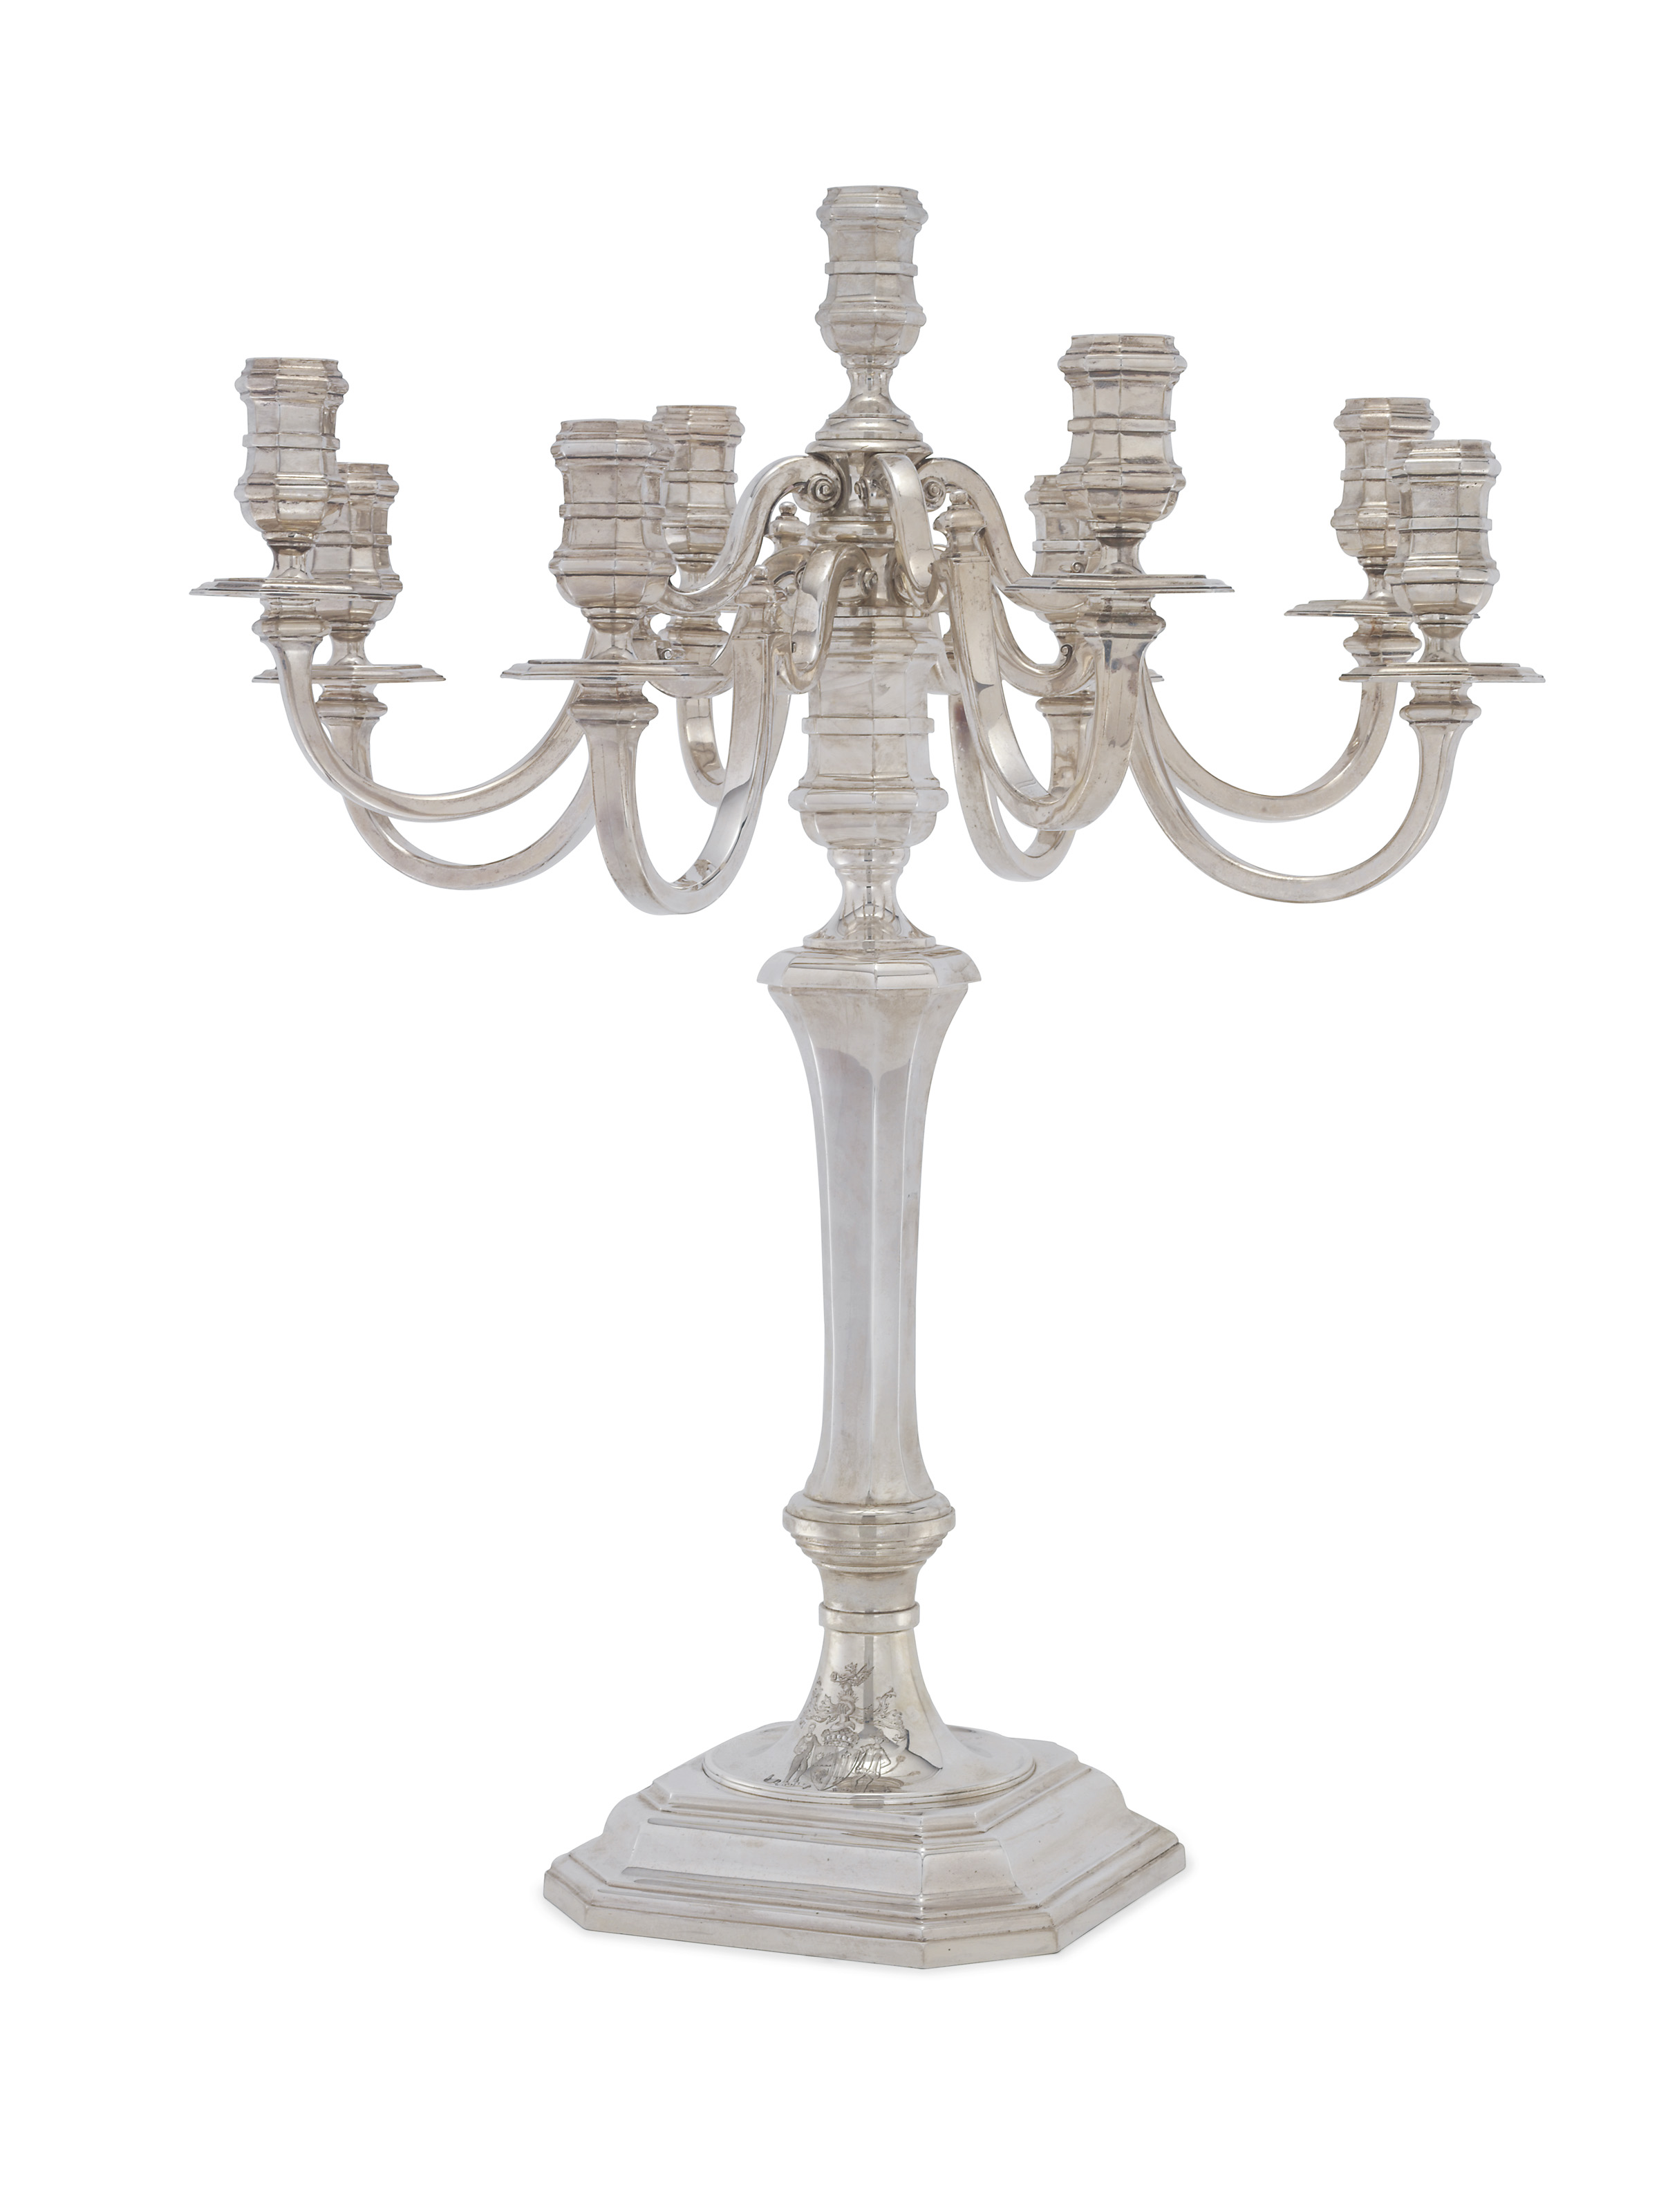 A MASSIVE GEORGE V SILVER NINE-LIGHT CANDELABRUM